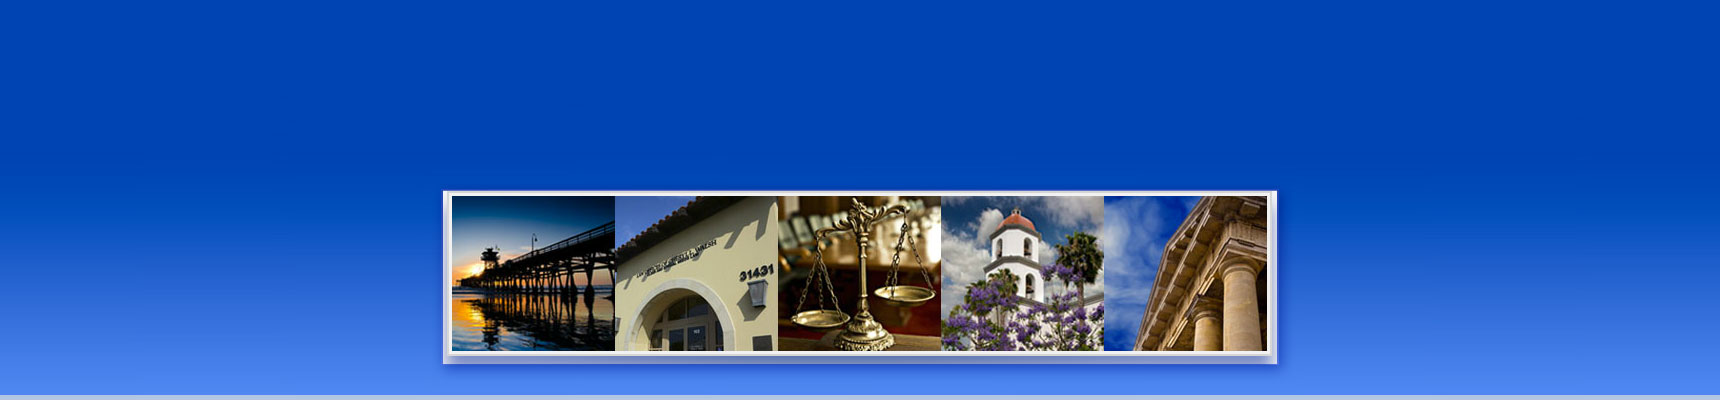 orange-county-elder-law-attorney-cheryl-walsh